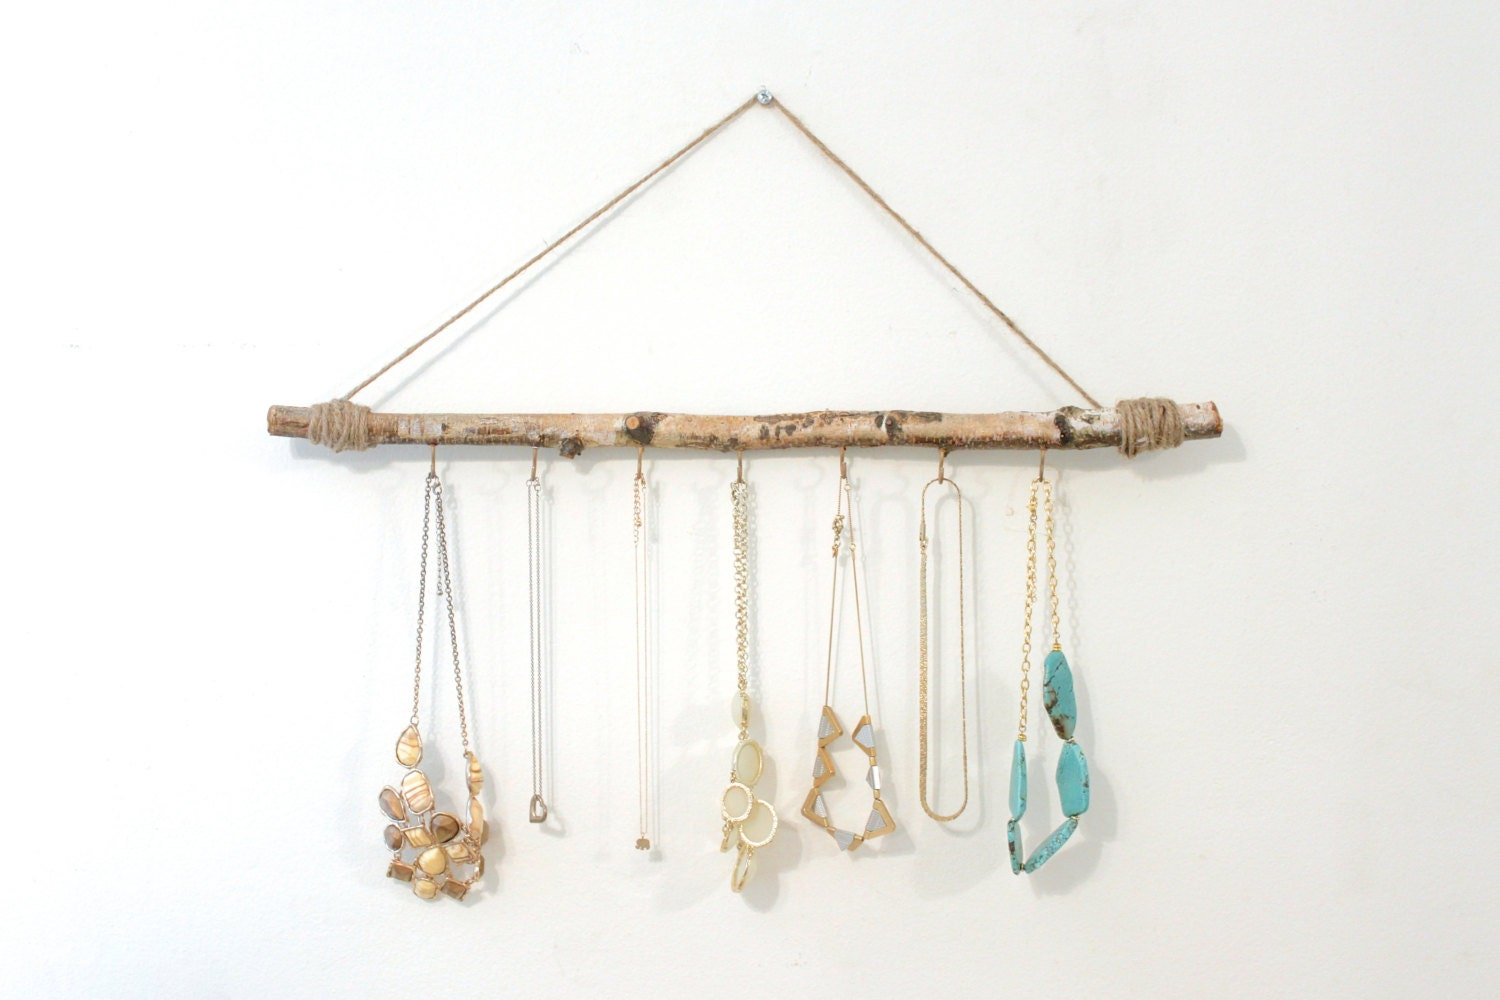 Tree branch jewelry holder jewelry branch holder jewelry for Tree branch jewelry holder